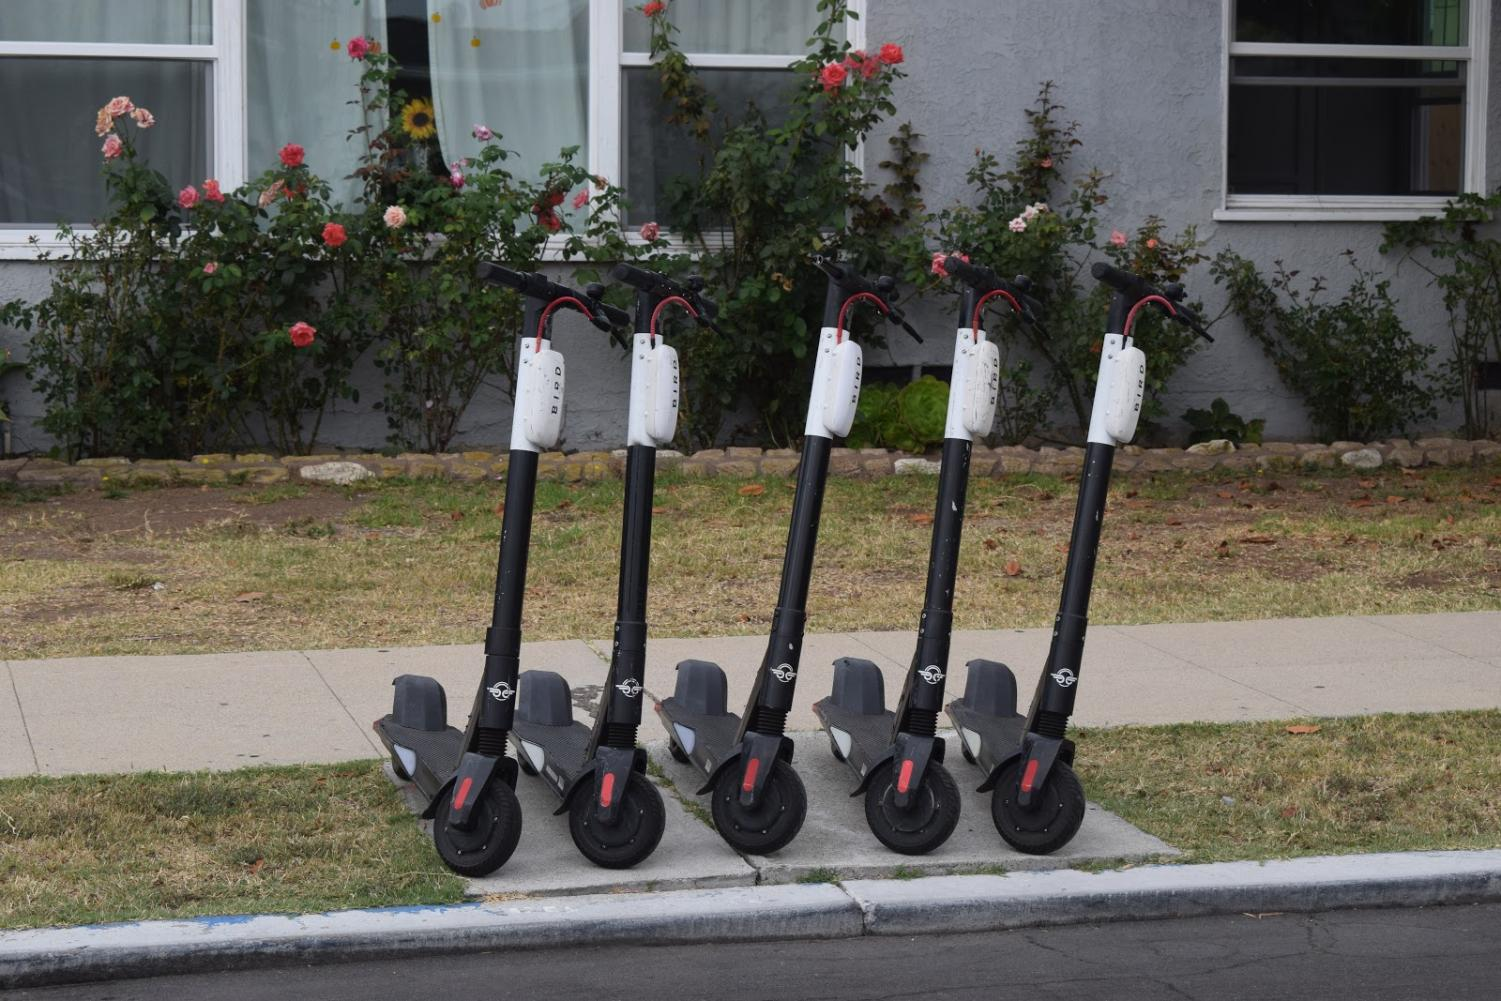 Bird scooters parked on a residential street in the College Area.